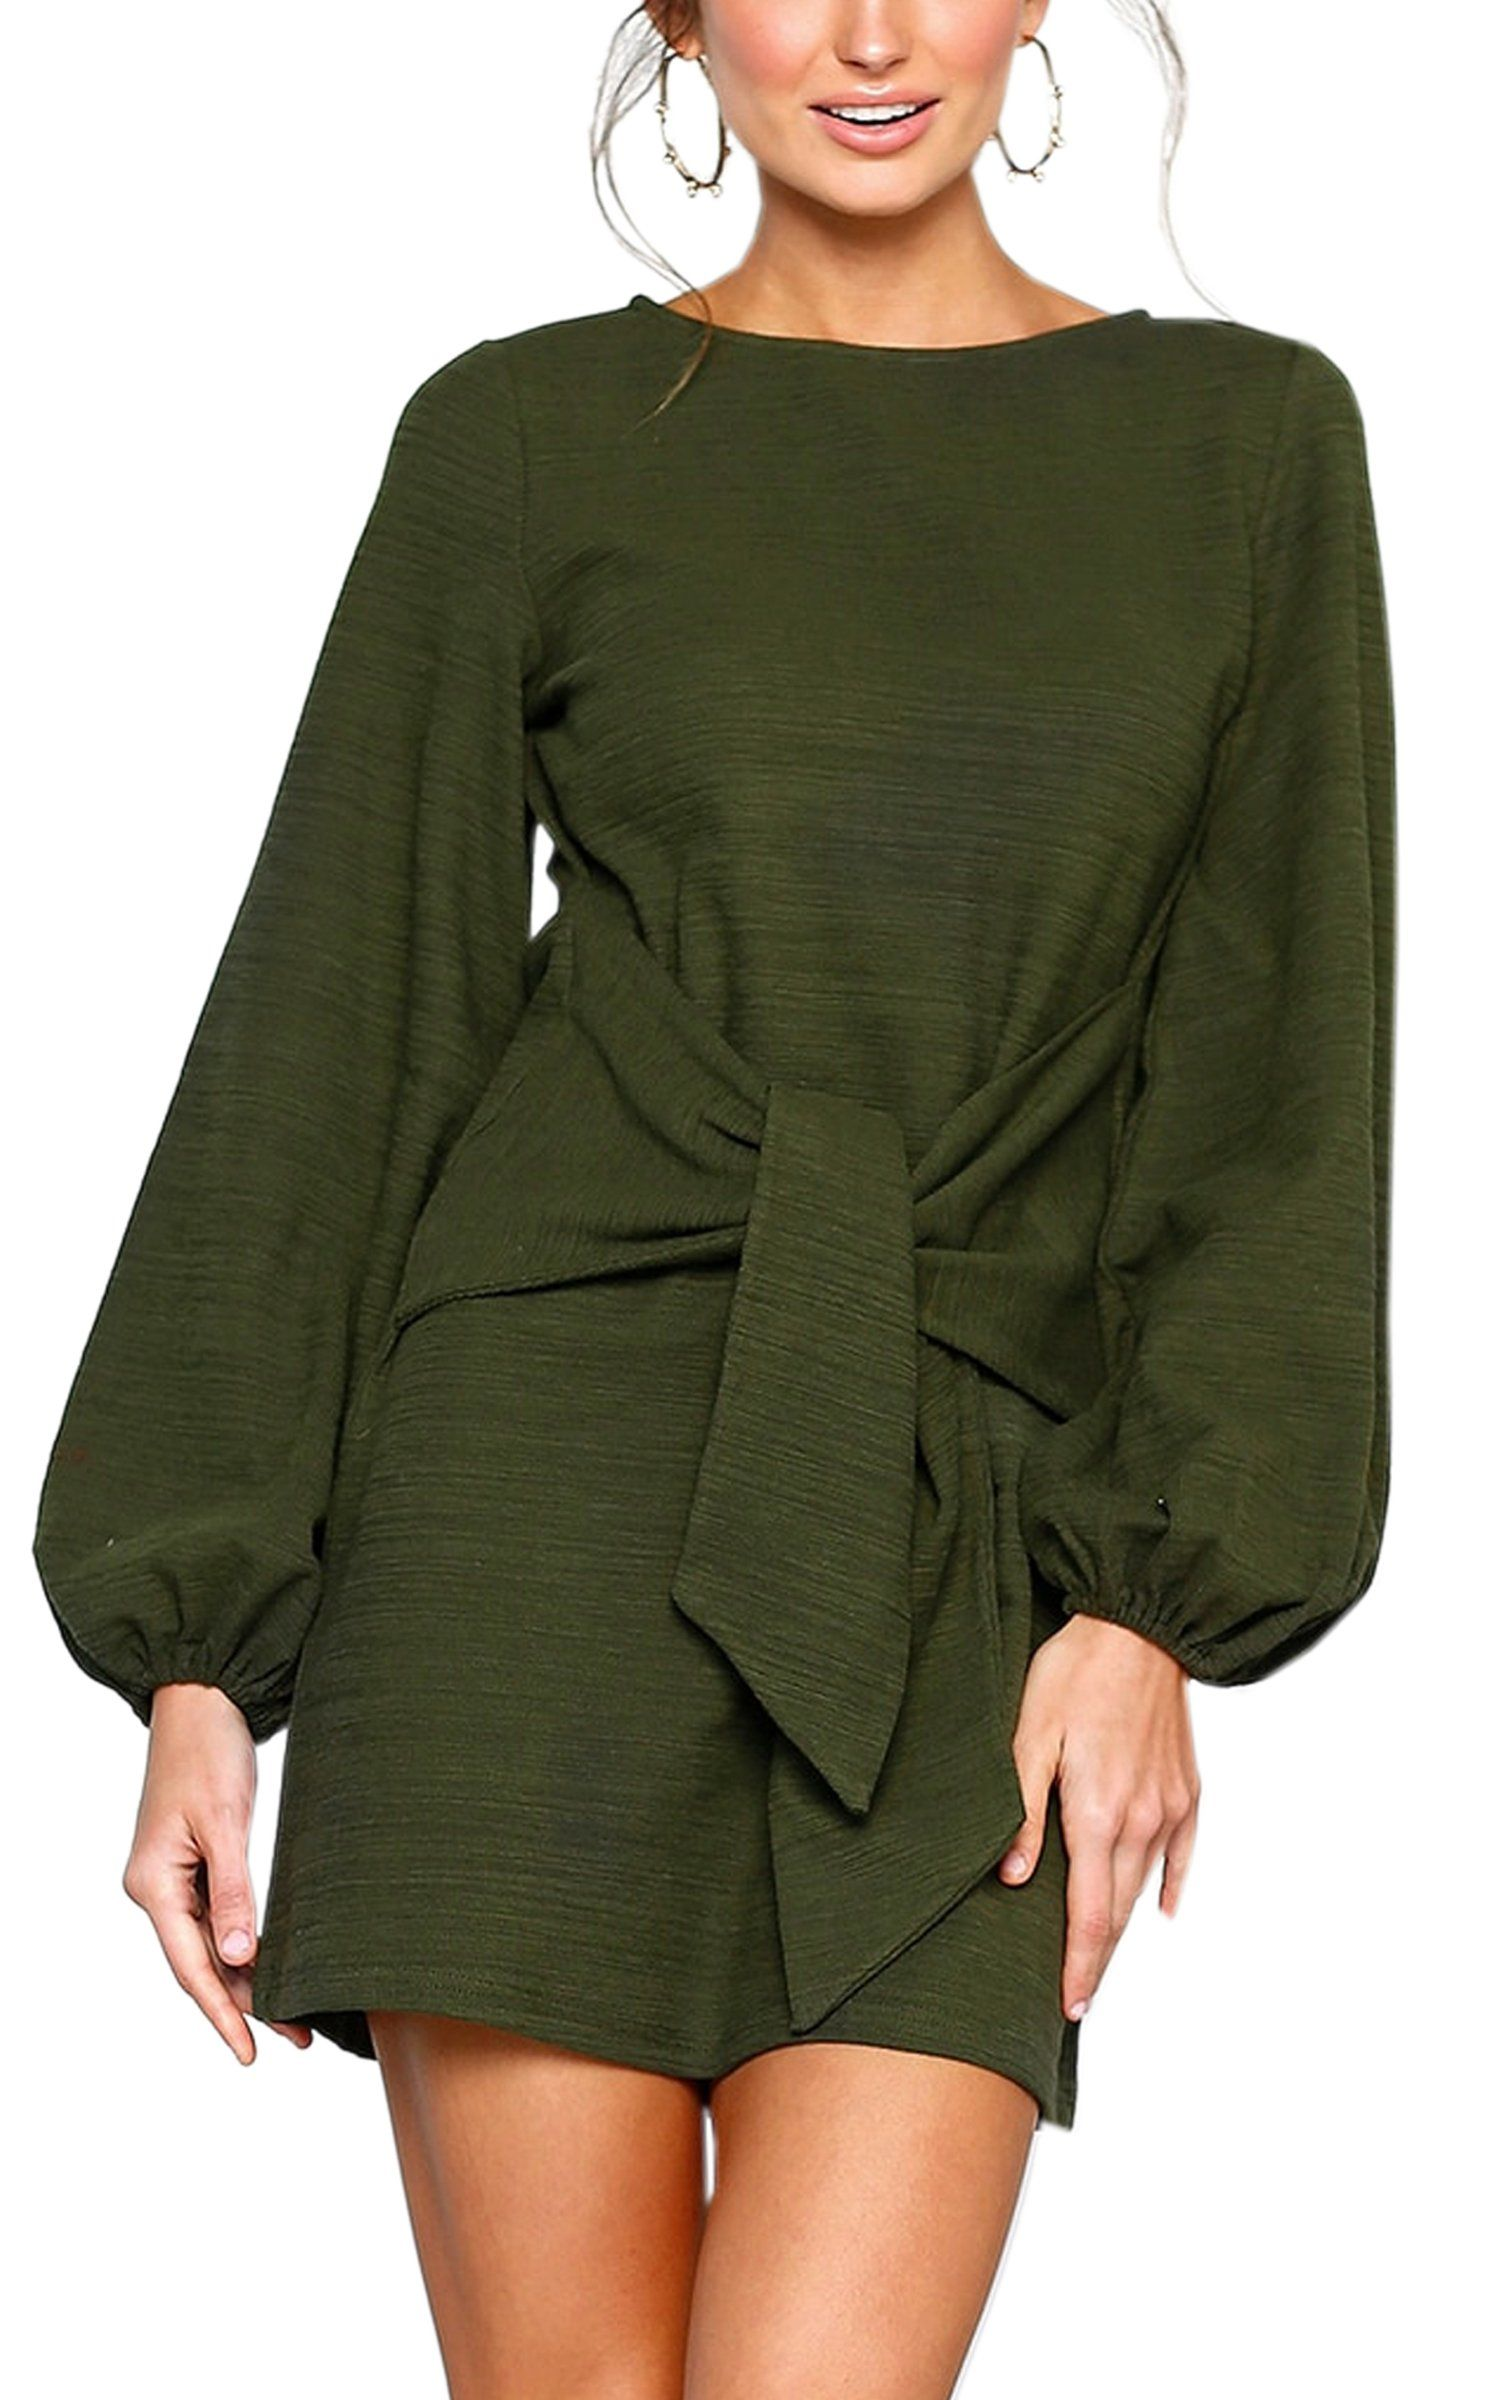 b28c91f430a ECOWISH Womens Dresses Casual Long Lantern Sleeve Tie Front Crew Neck  Bodycon Mini Dress Green L